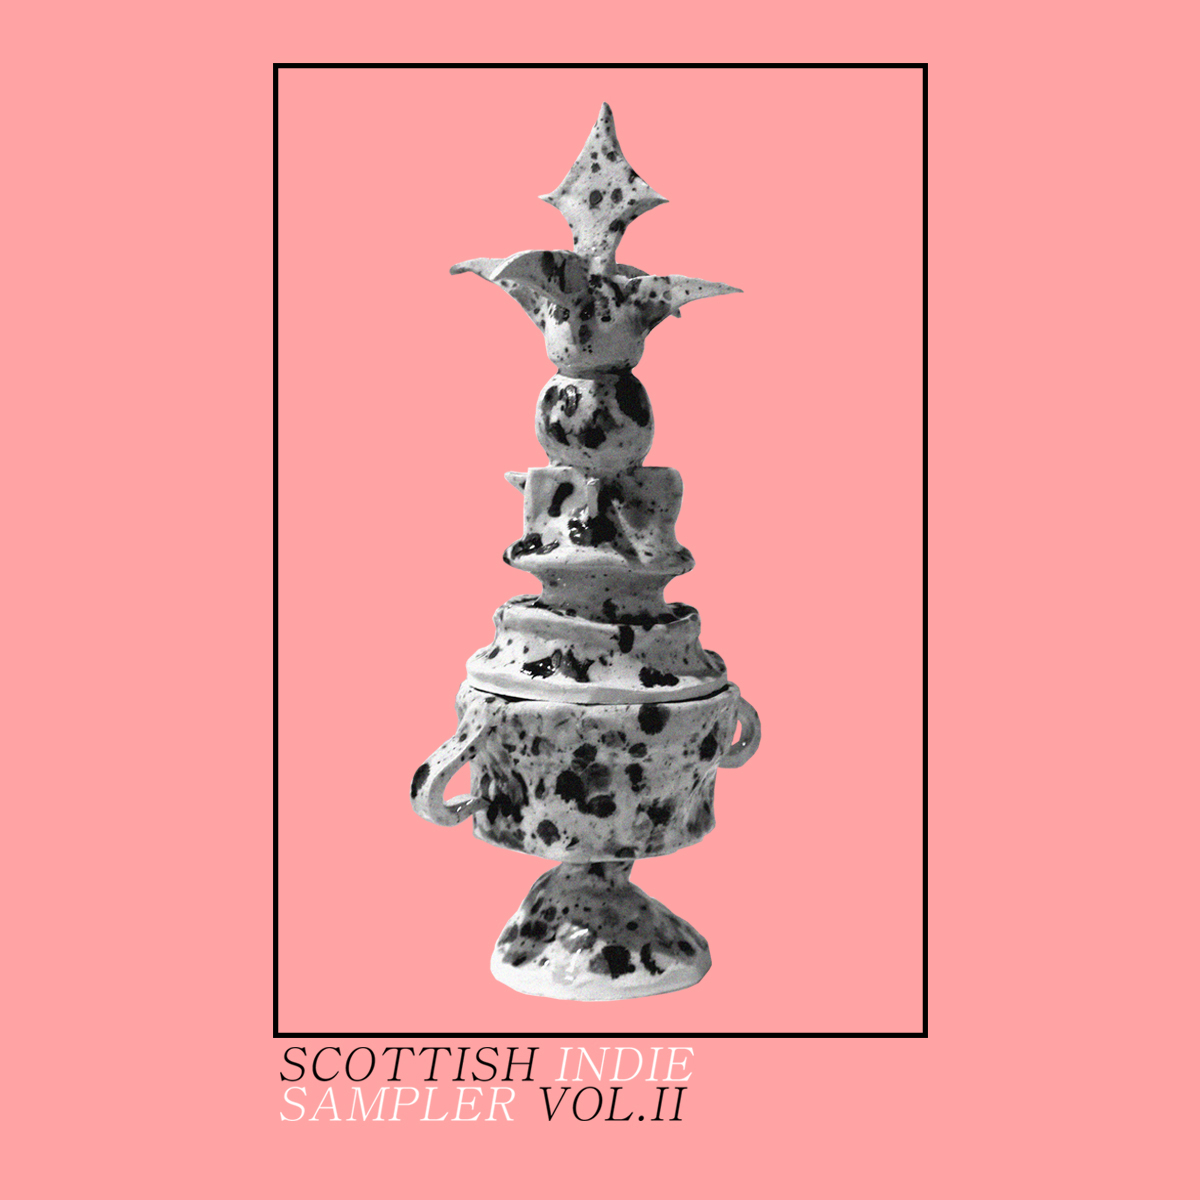 Scottish Indie Sampler Vol. II